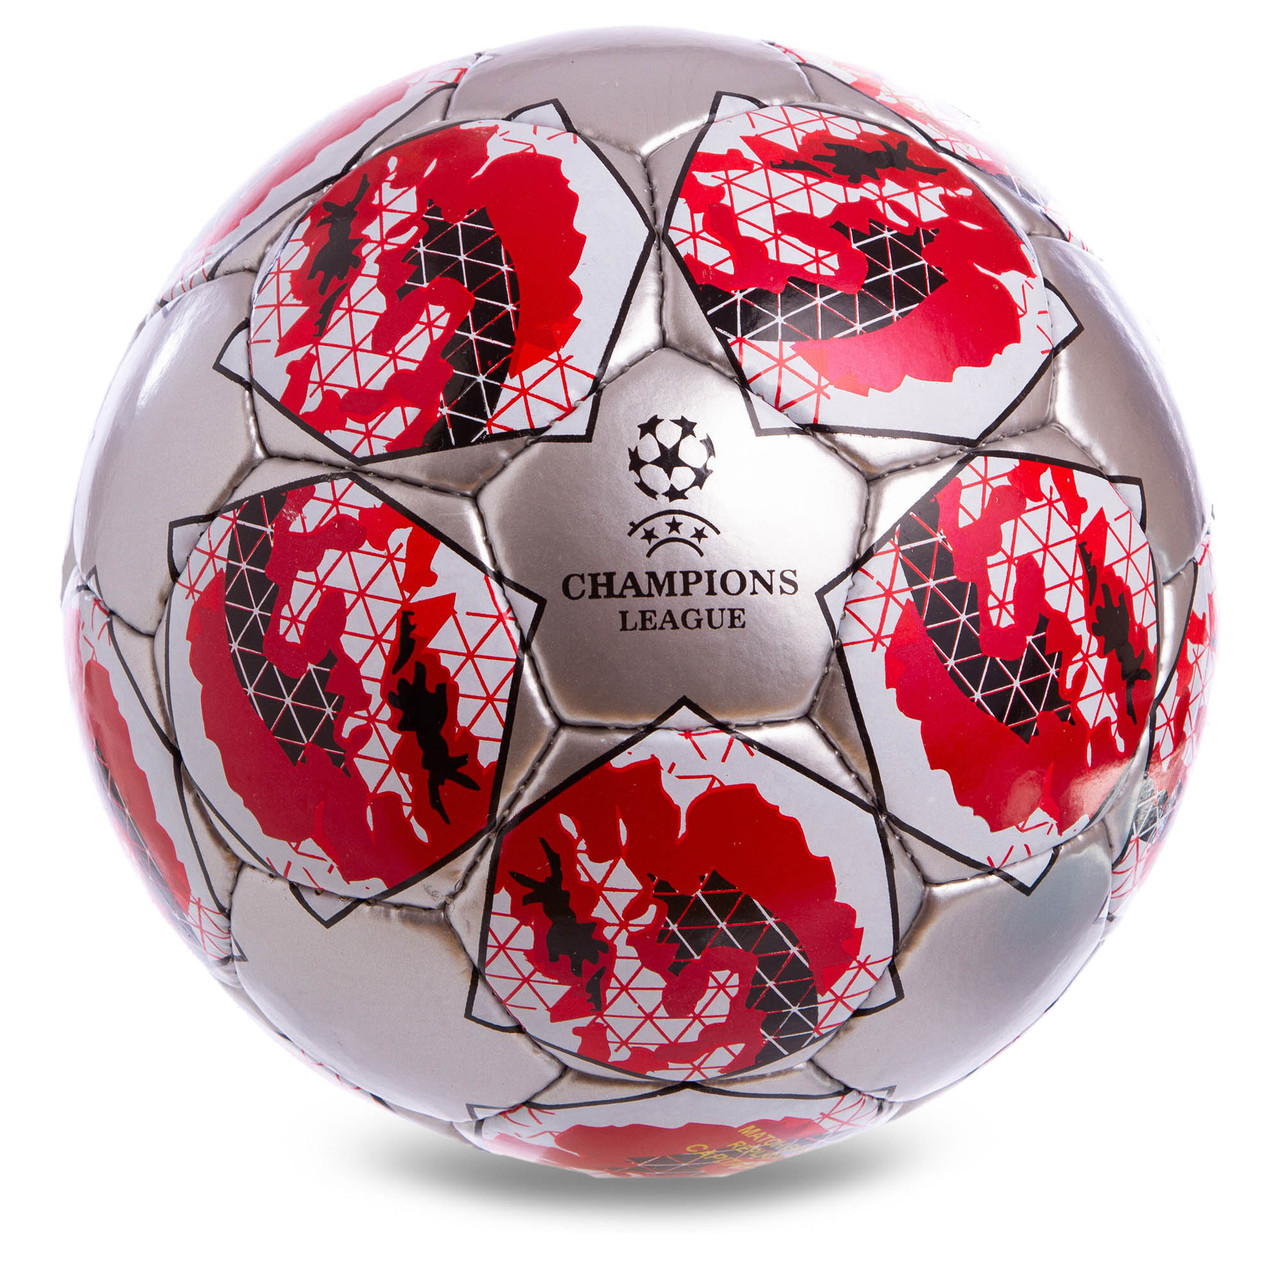 Мяч футбольный №5 PU ламин. CHAMPIONS LEAGUE FINAL 2020 FB-2146 Replica